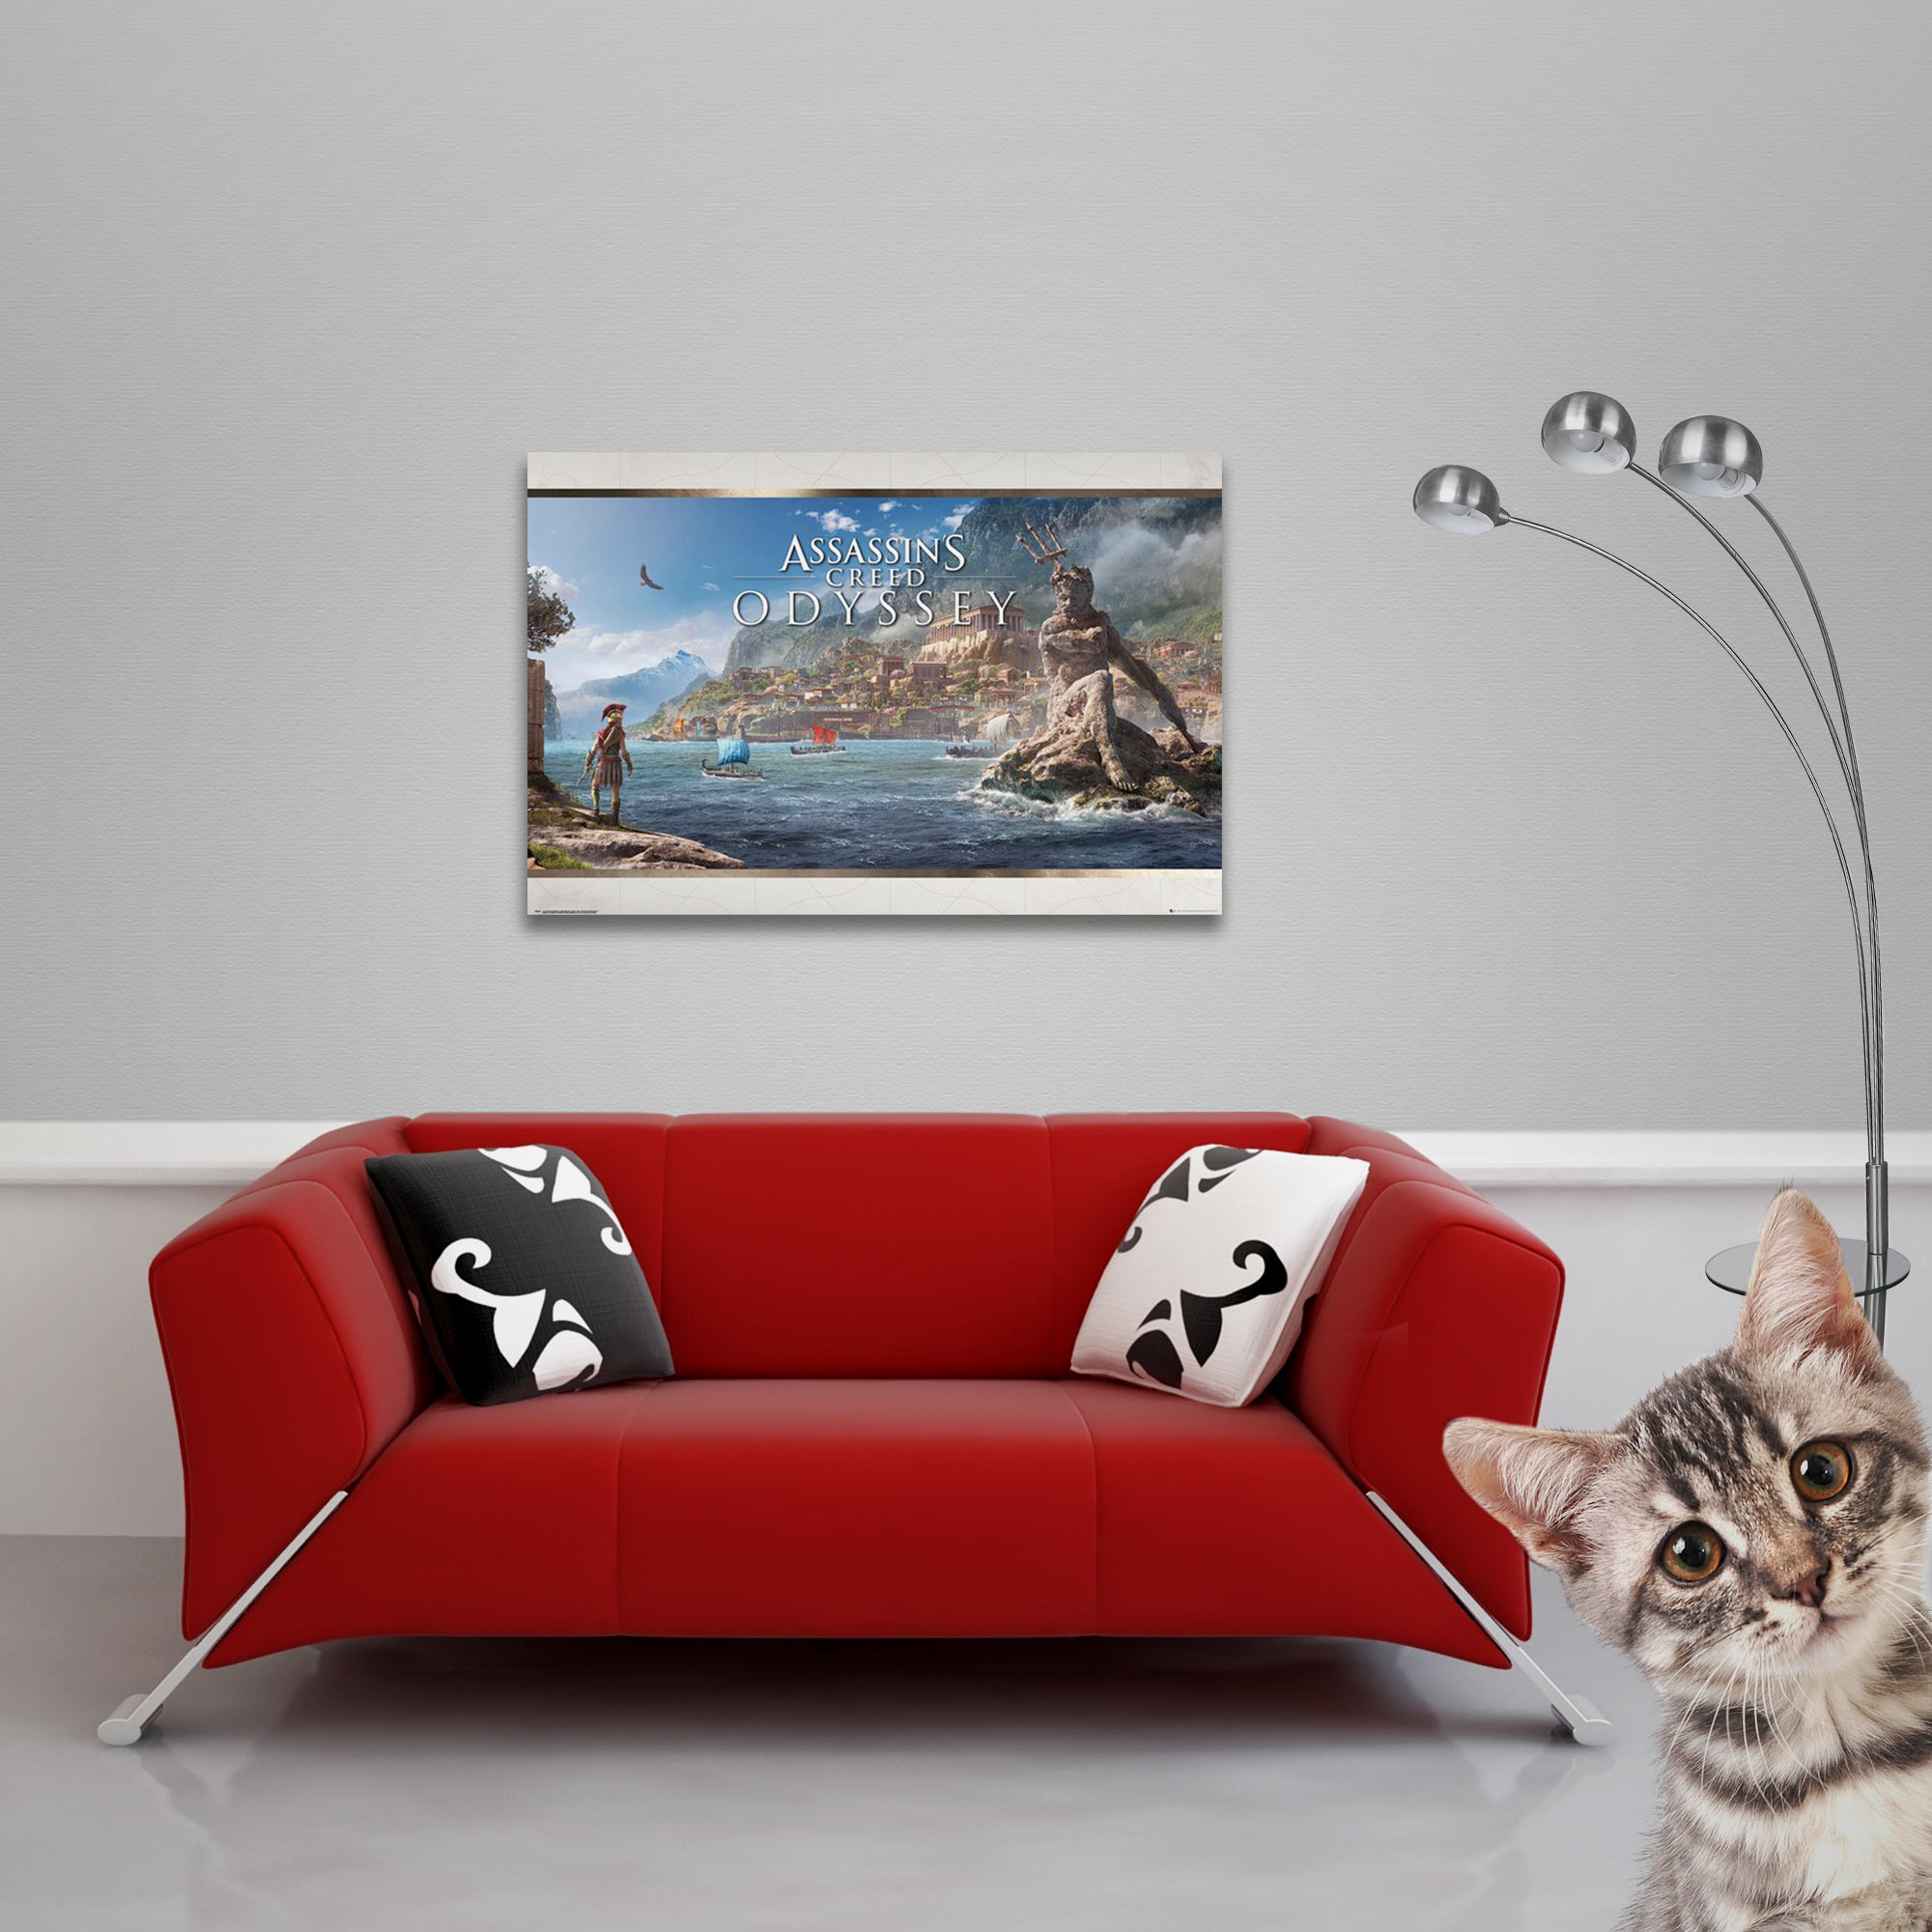 Assassins Creed - Poster - Odyssey - Vista Vorschau Sofa